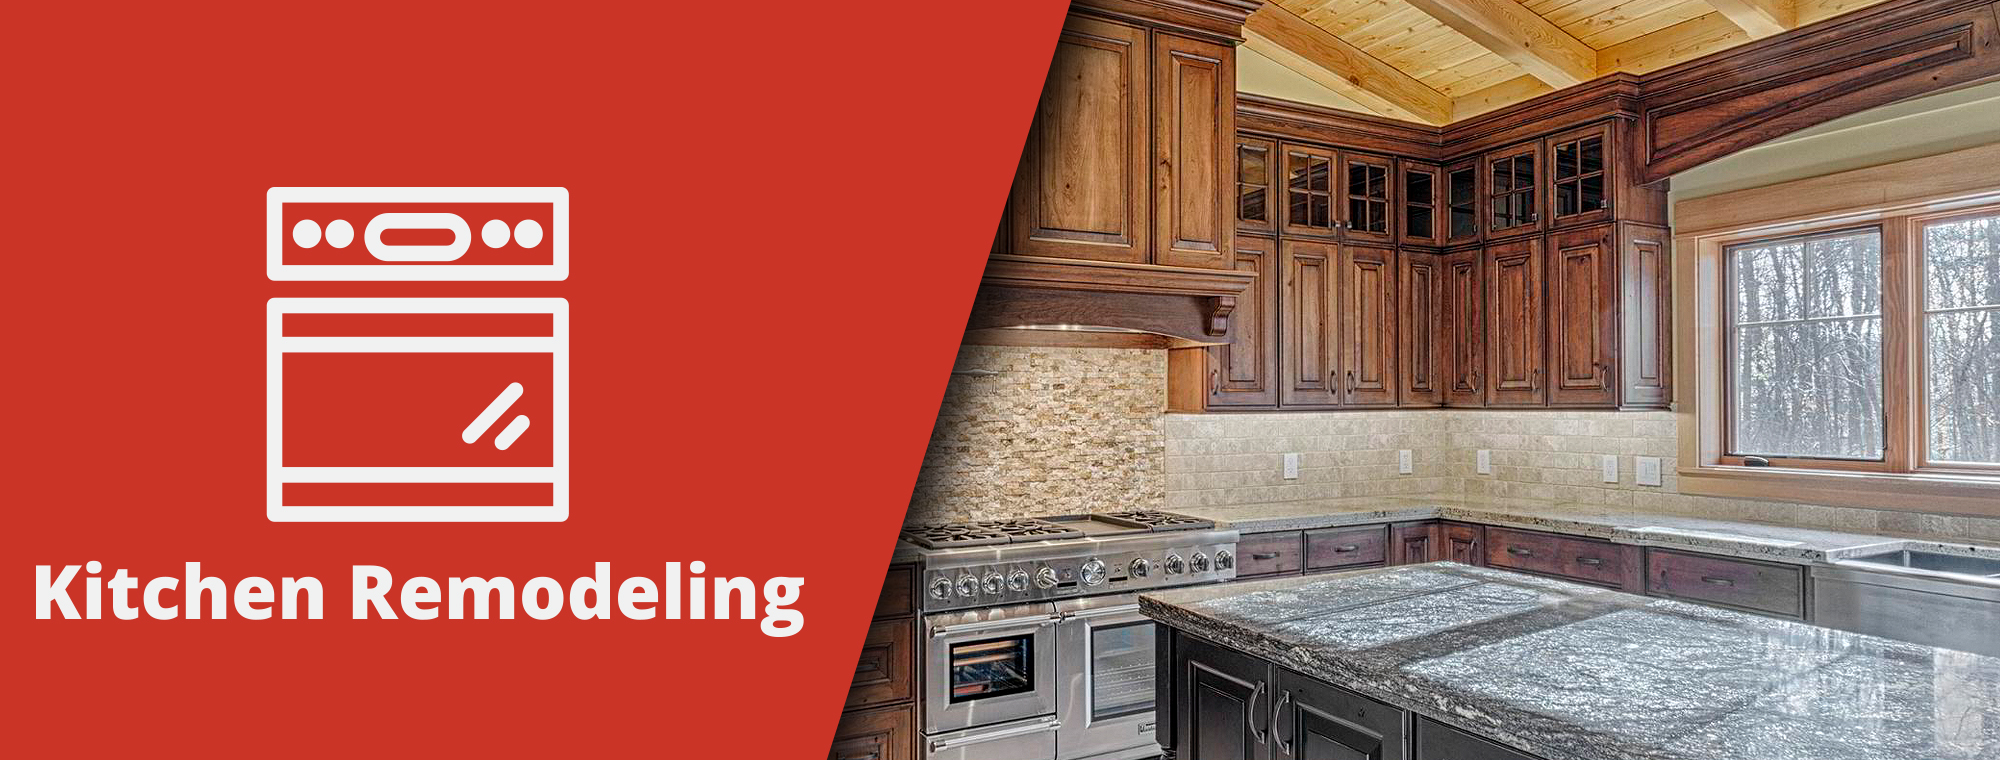 kitchen remodeling contractor columbia maryland